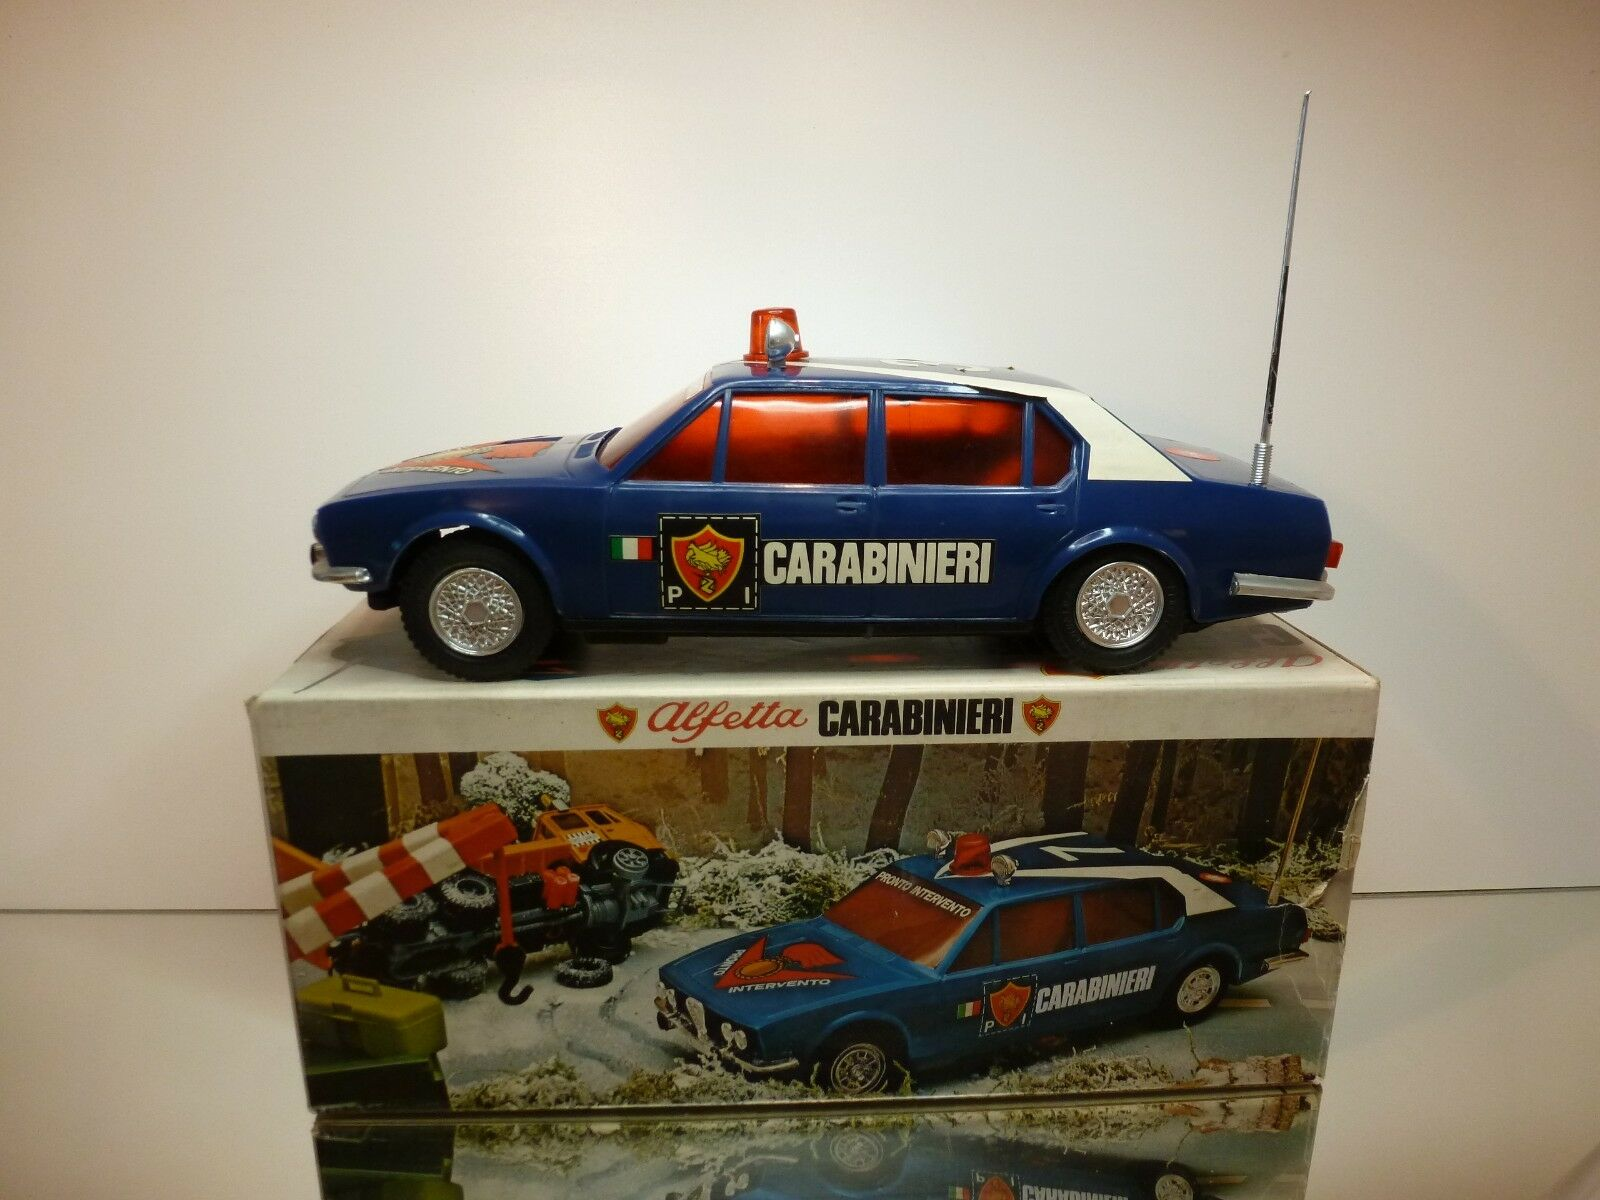 REEL ALFA ROMEO ALFETTA CARABINIERI - blu L34.0cm - GOOD CONDITION IN BOX